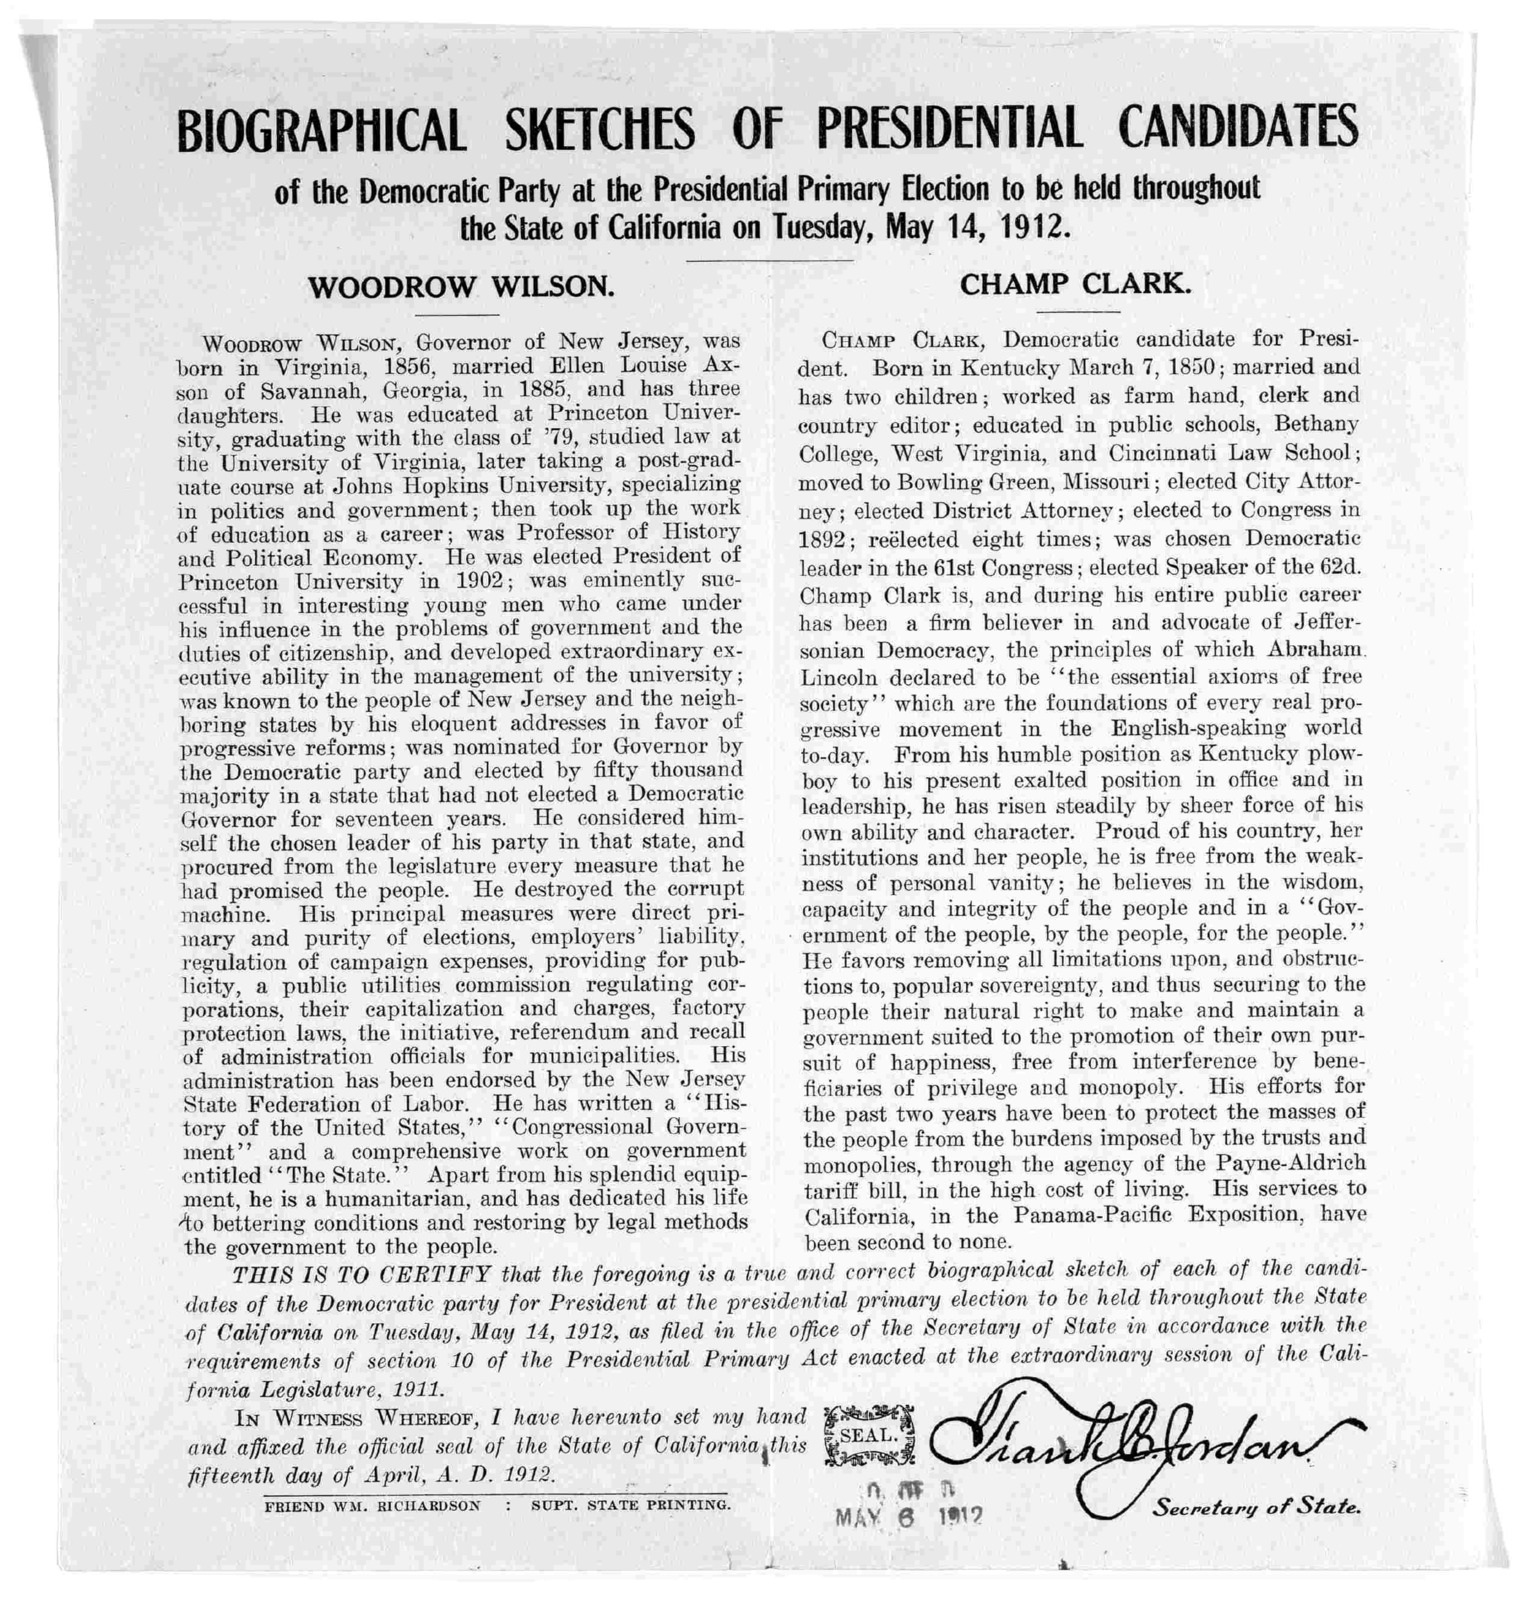 Biographical sketches of presidential candidates of the Democratic party at the presidential primary election to be held throughout the state of California on Tuesday, May 14, 1912. Woodrow Wilson. Champ Clark.